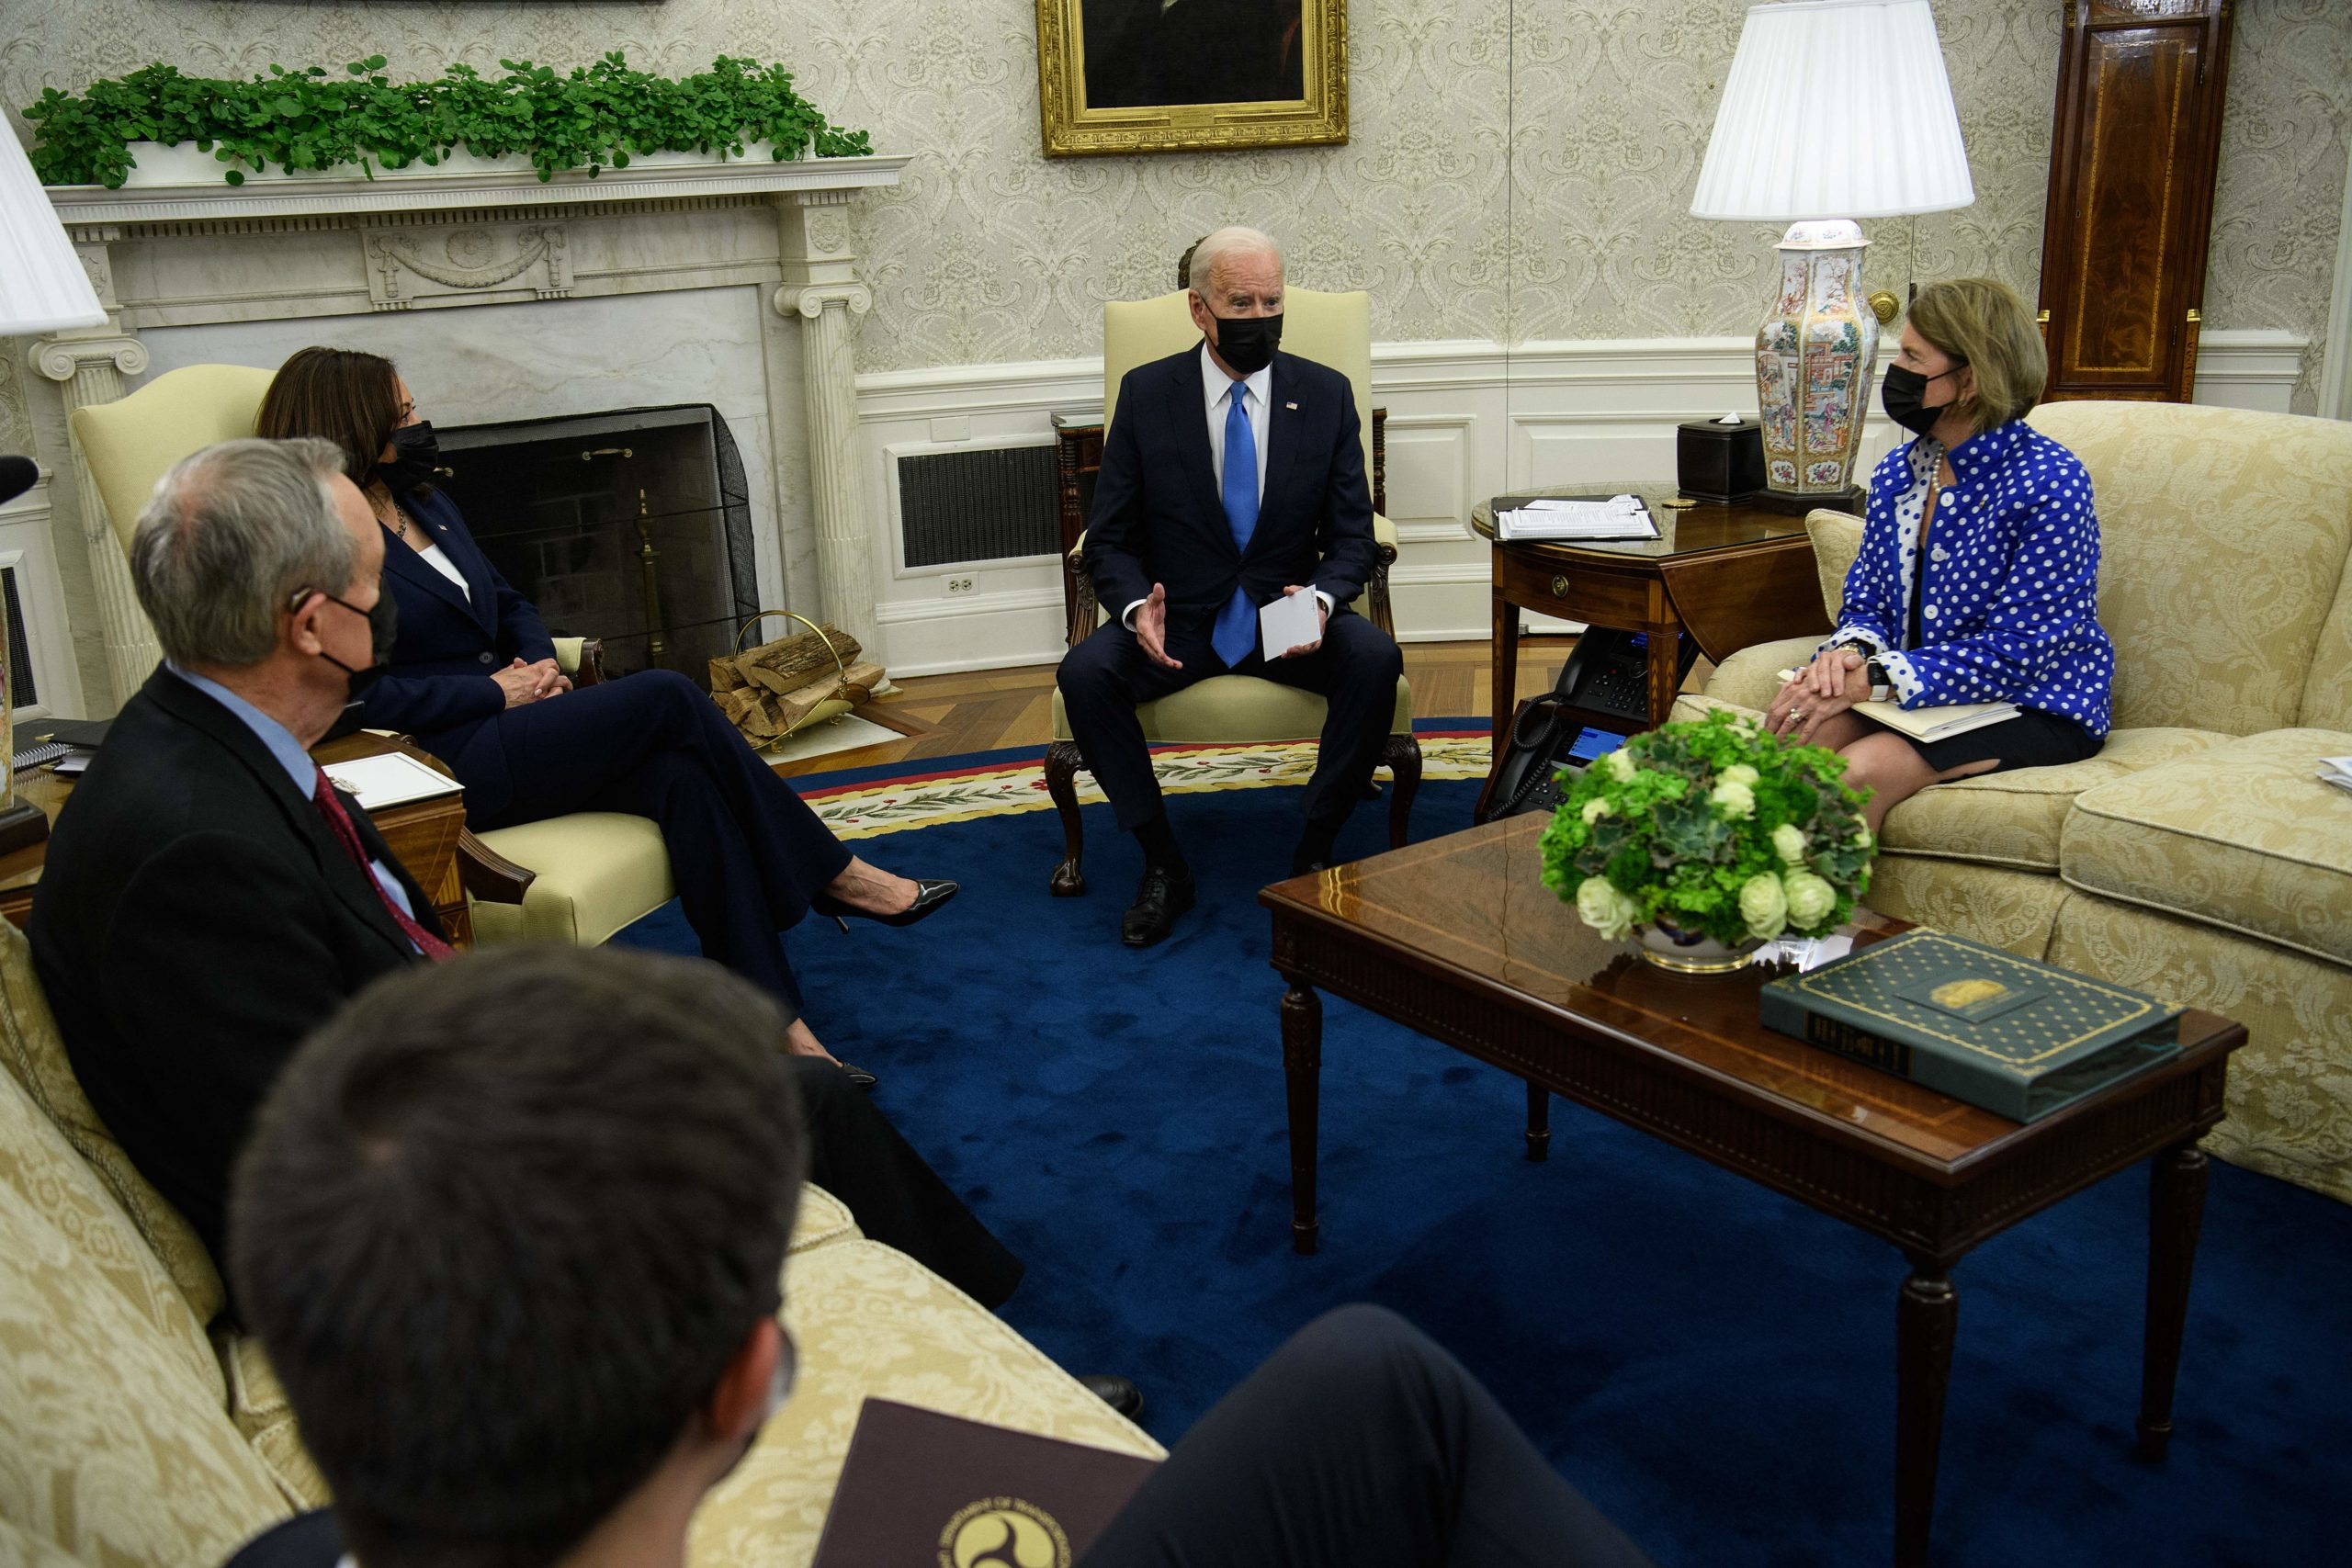 US President Joe Biden(C) and Vice President Kamala Harris(L) meet with Republican Senator from West Virginia Shelley Moore Capito (R) and Republican Senator Mike Crapo of Idaho (frontL) to discuss an infrastructure bill in the Oval Office at the White House in Washington, DC, on May 13, 2021. (NICHOLAS KAMM/AFP via Getty Images)